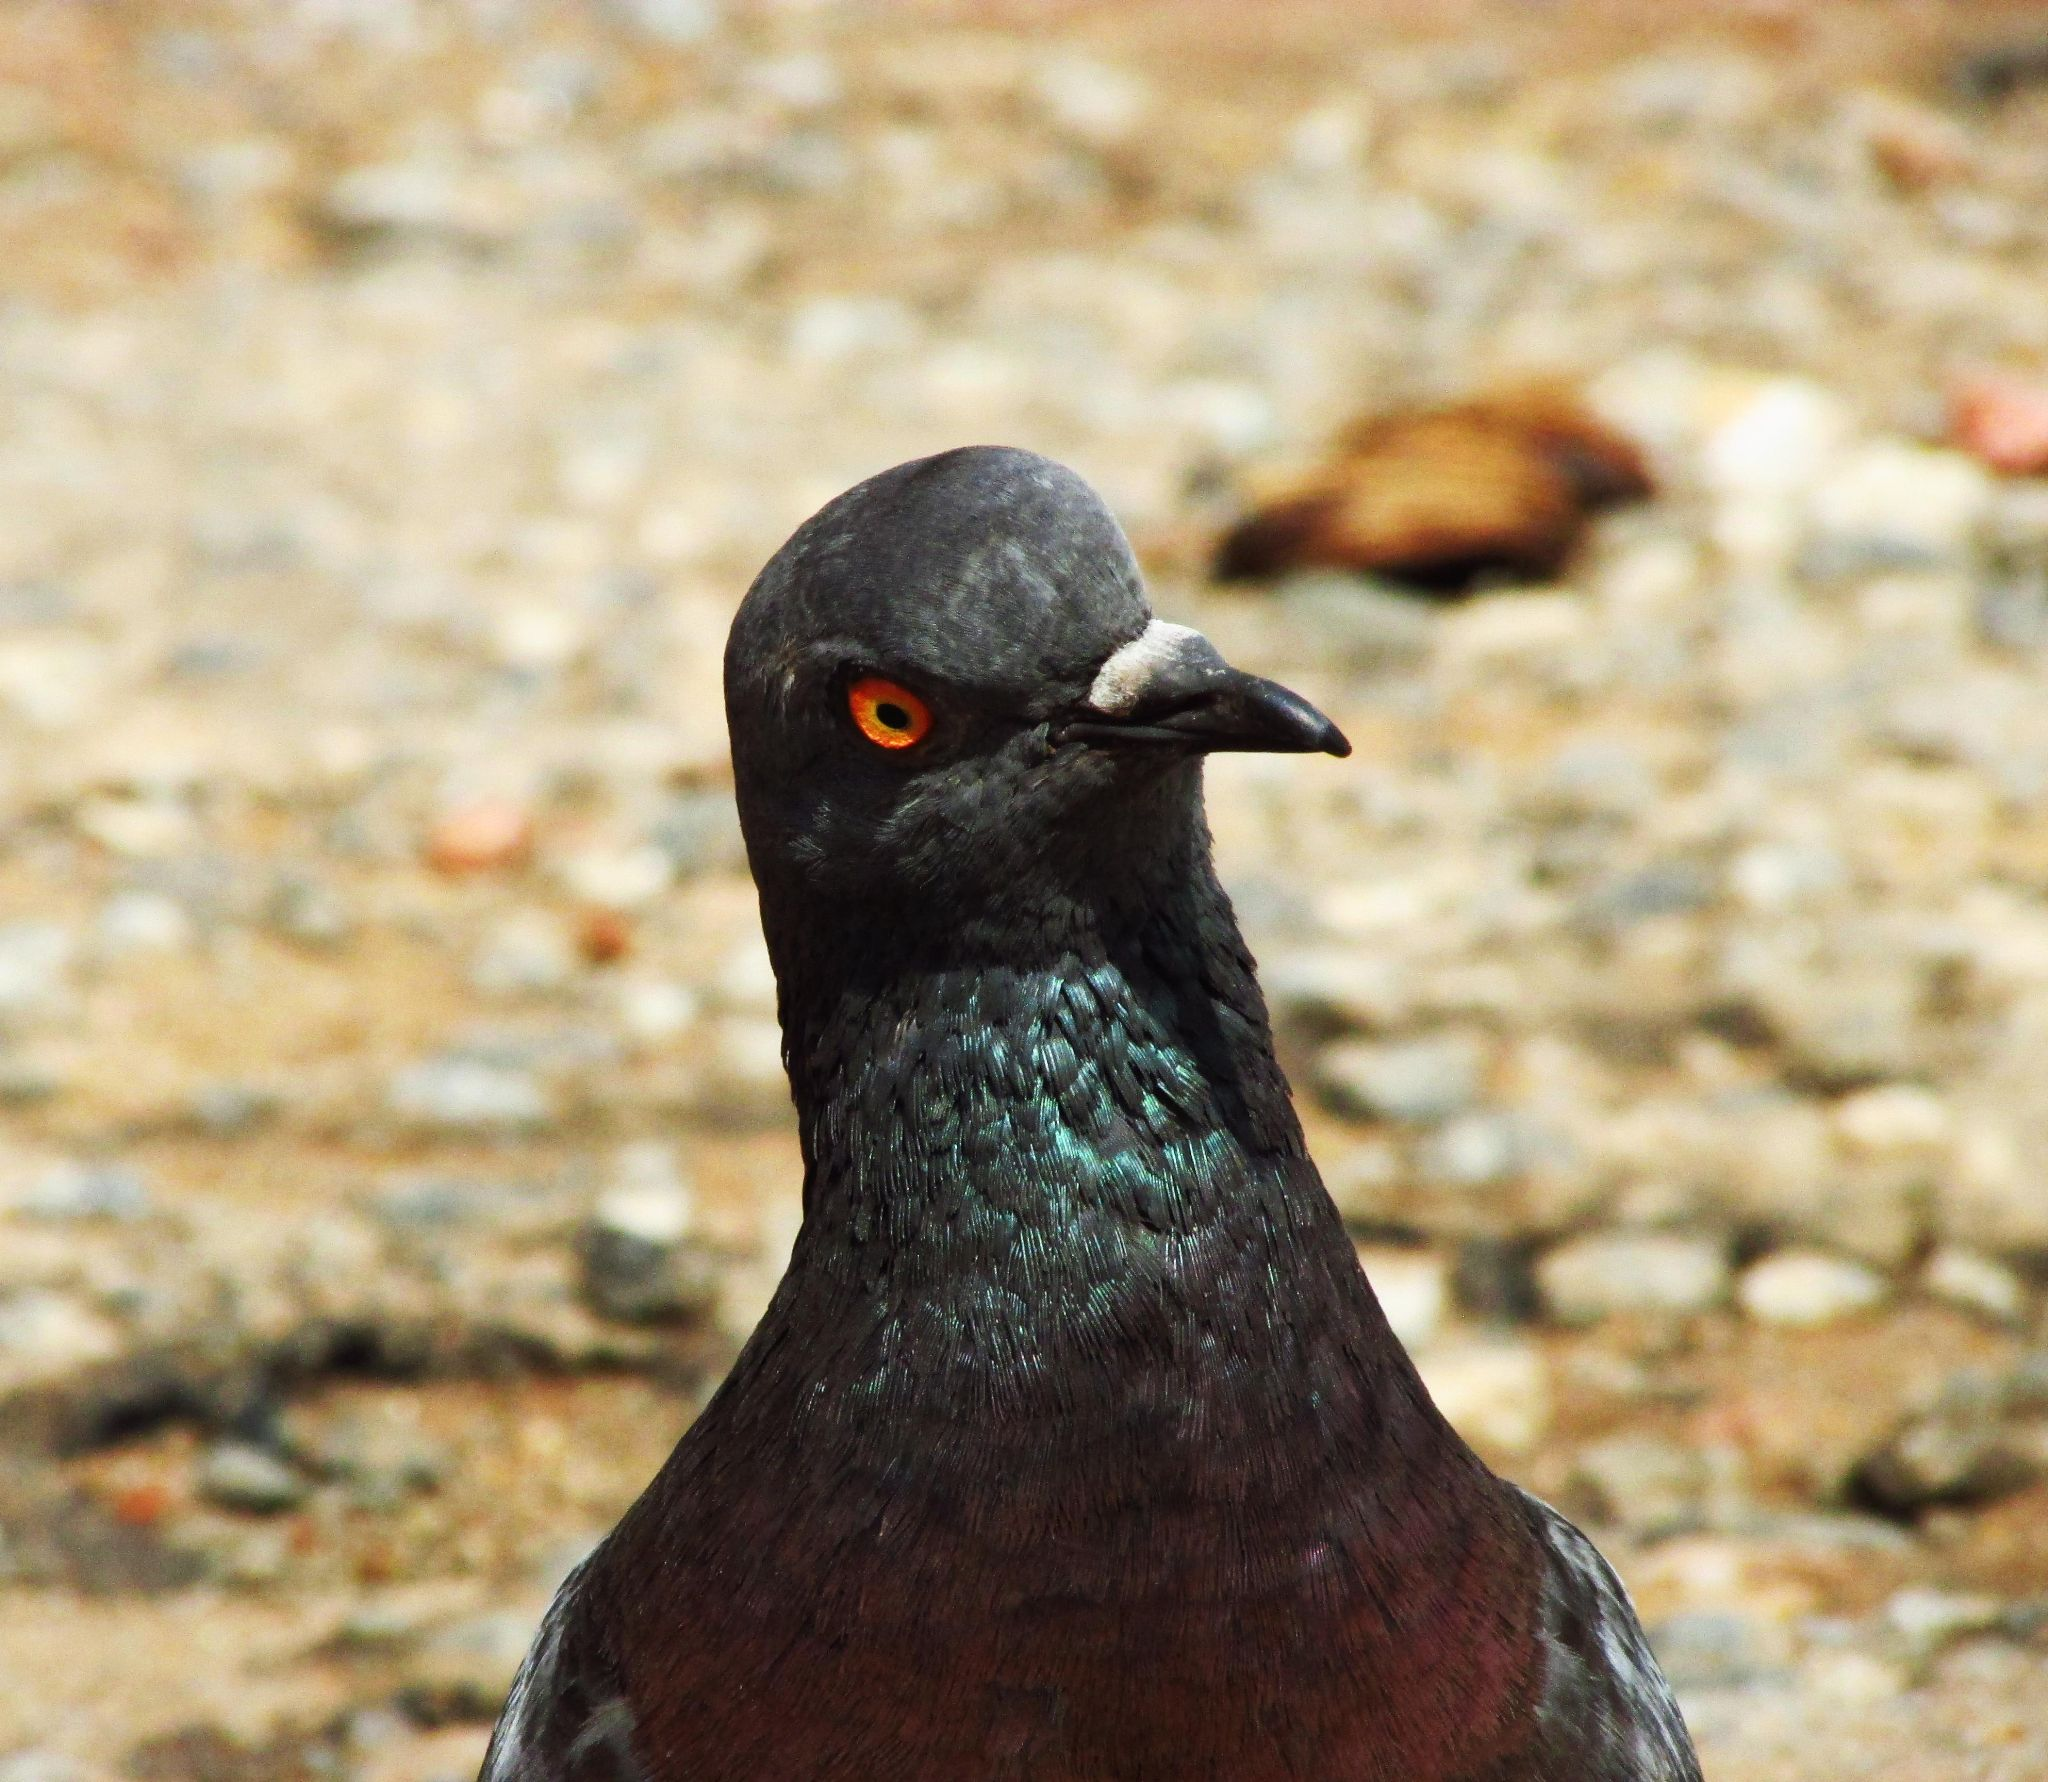 Pigeon by Axelle